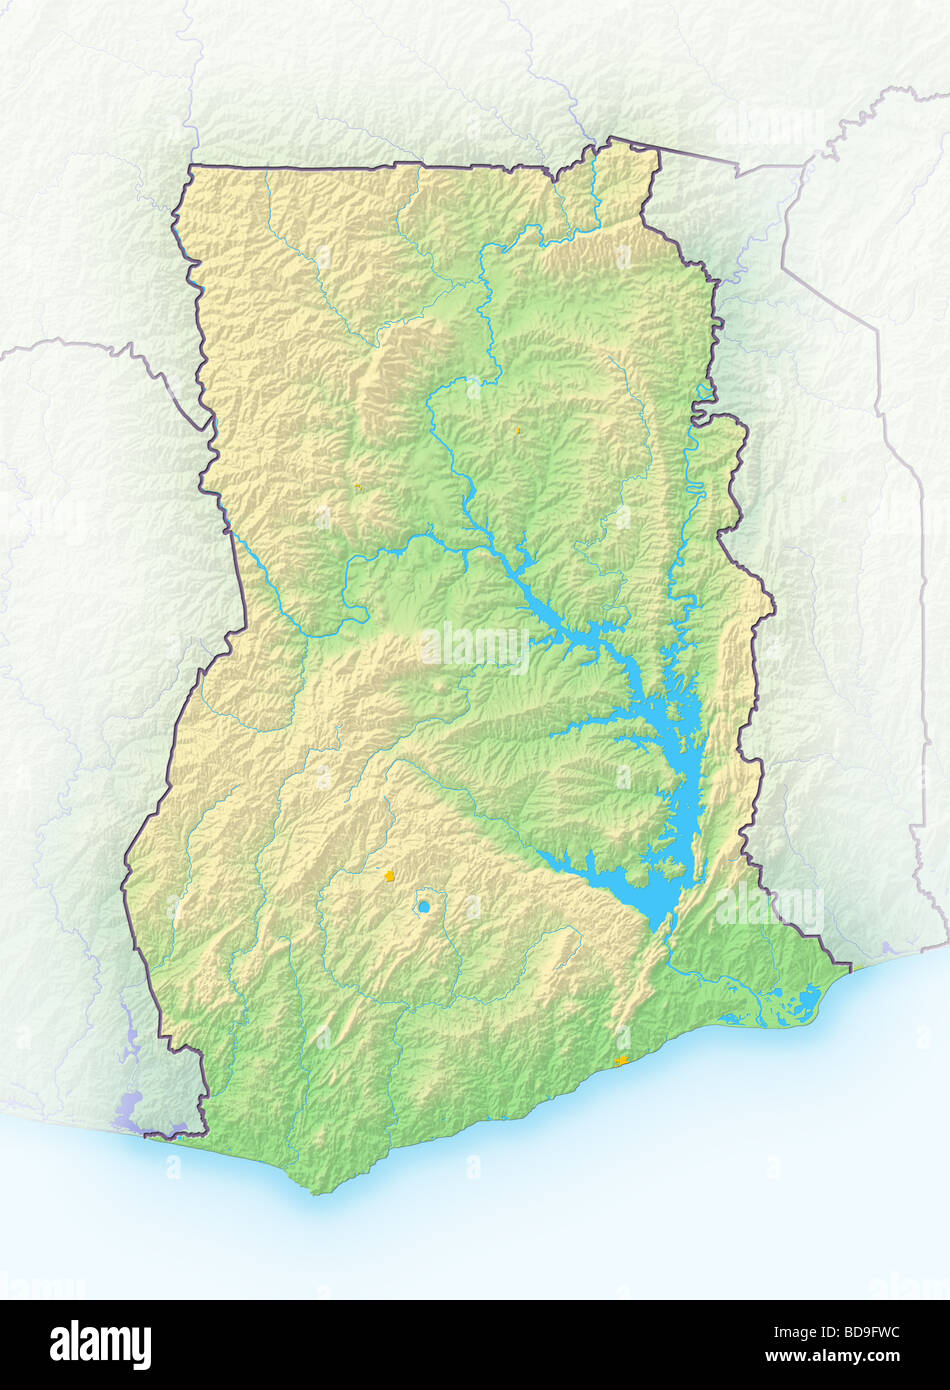 Ghana Shaded Relief Map Stock Photo Royalty Free Image - Map of ghana